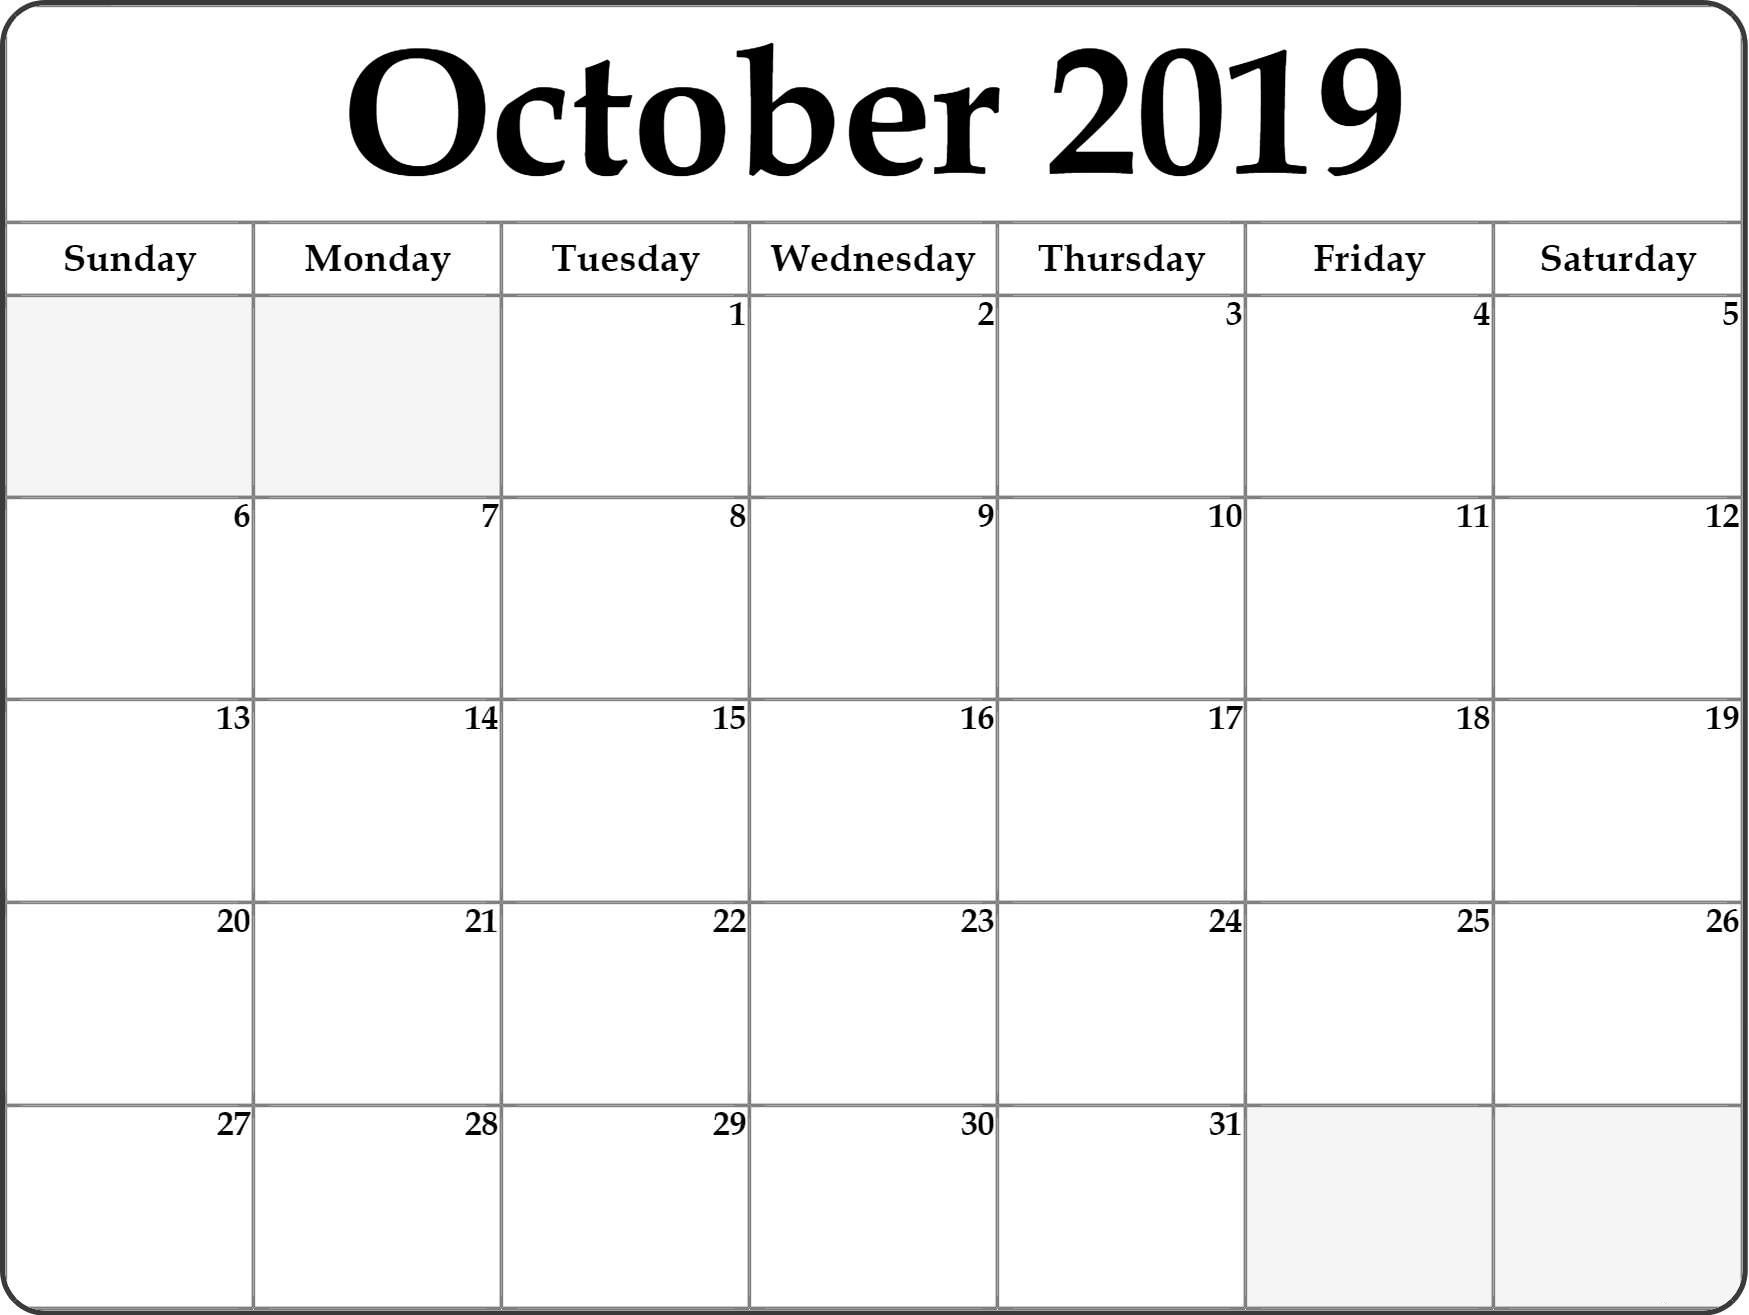 Fillable October Calendar 2019 Editable Printable Notes To within Fillable Printable Calendar